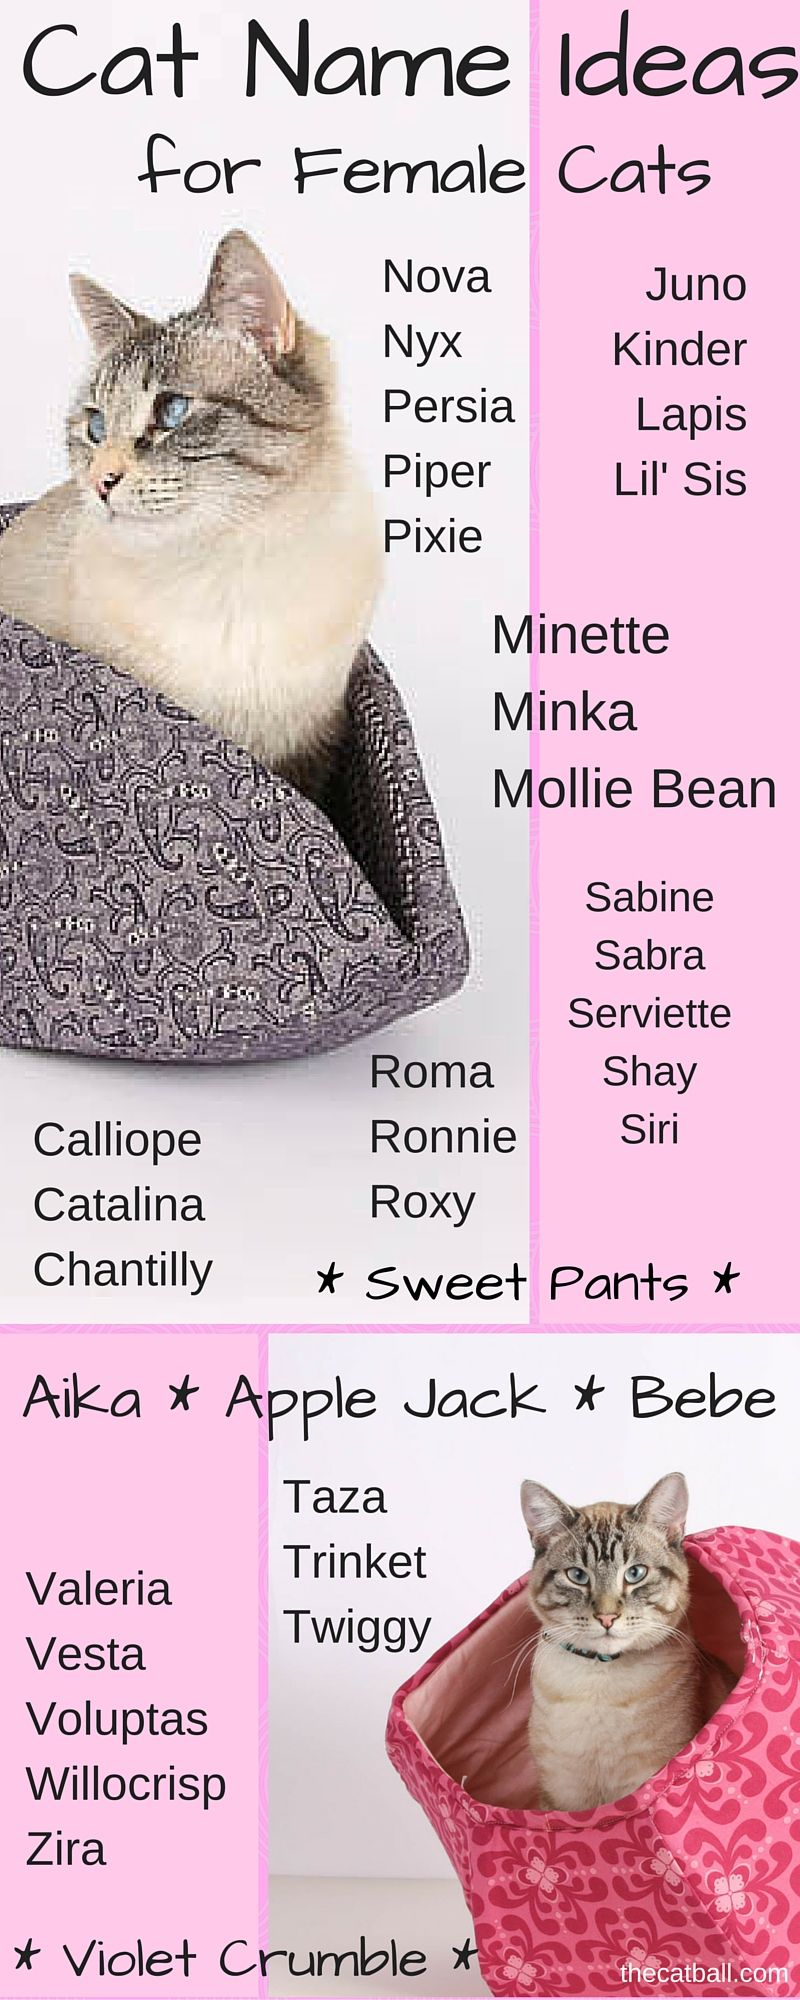 Cat Name Ideas for Female Cats